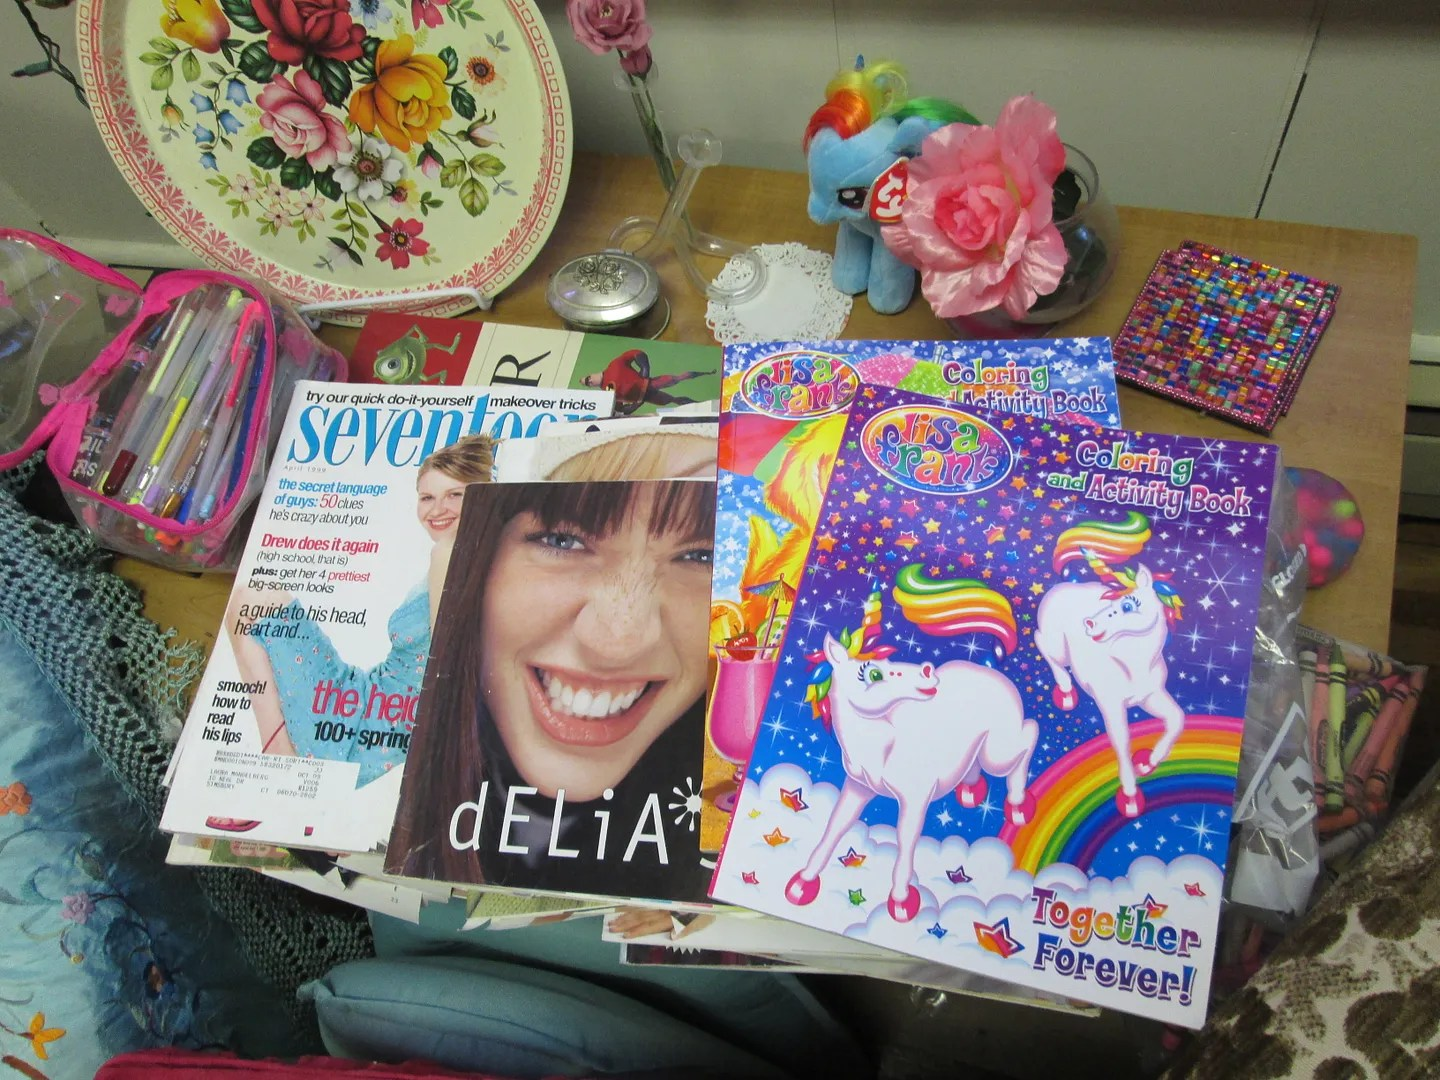 90s seventeen, delias, and lisa frank coloring book